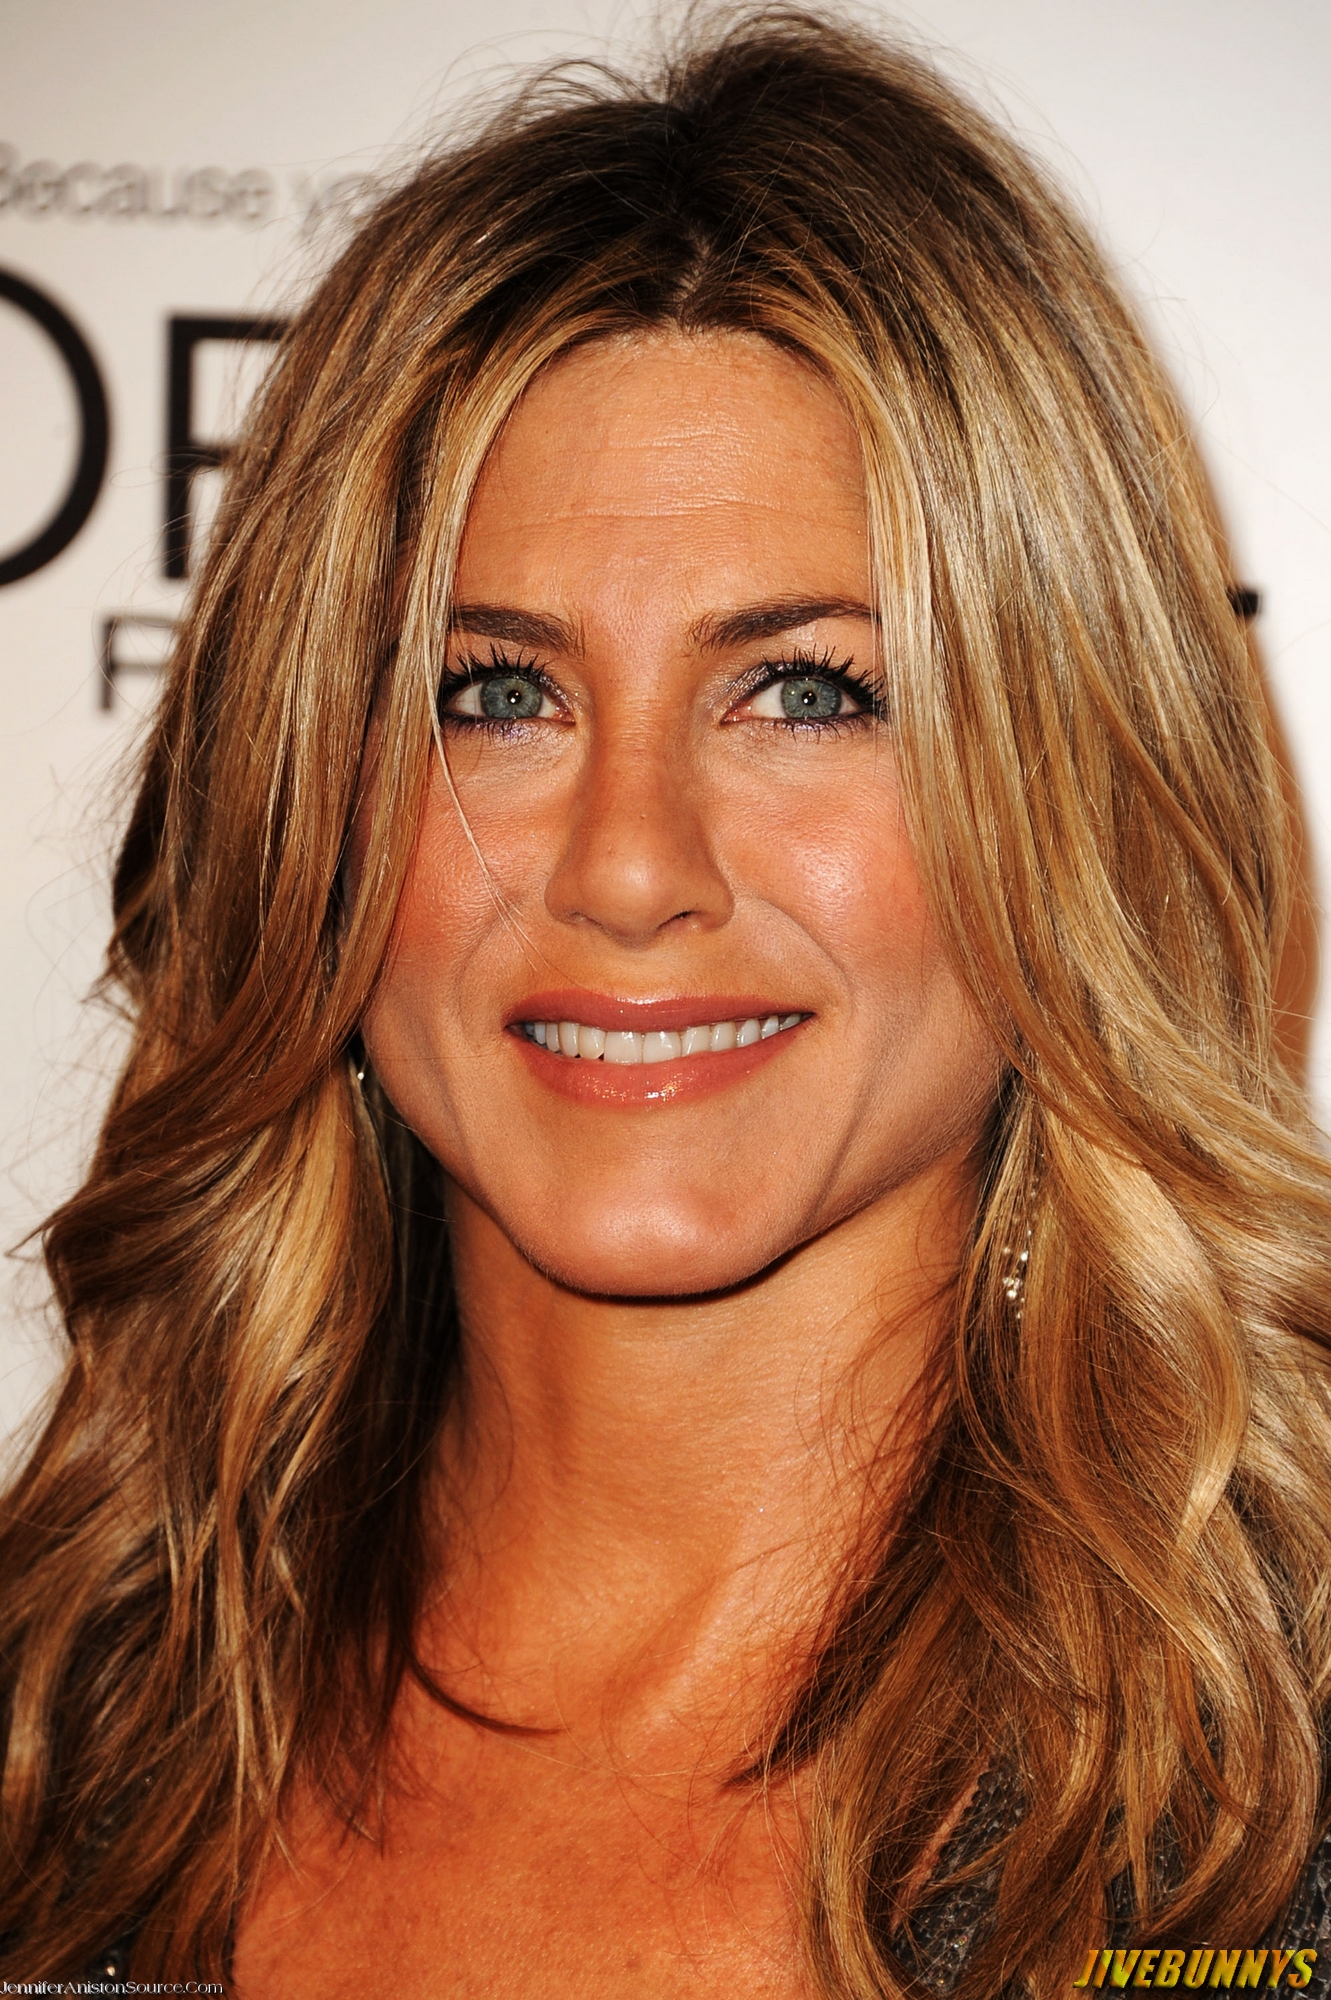 Jennifer Aniston Special Pictures 24 Film Actresses